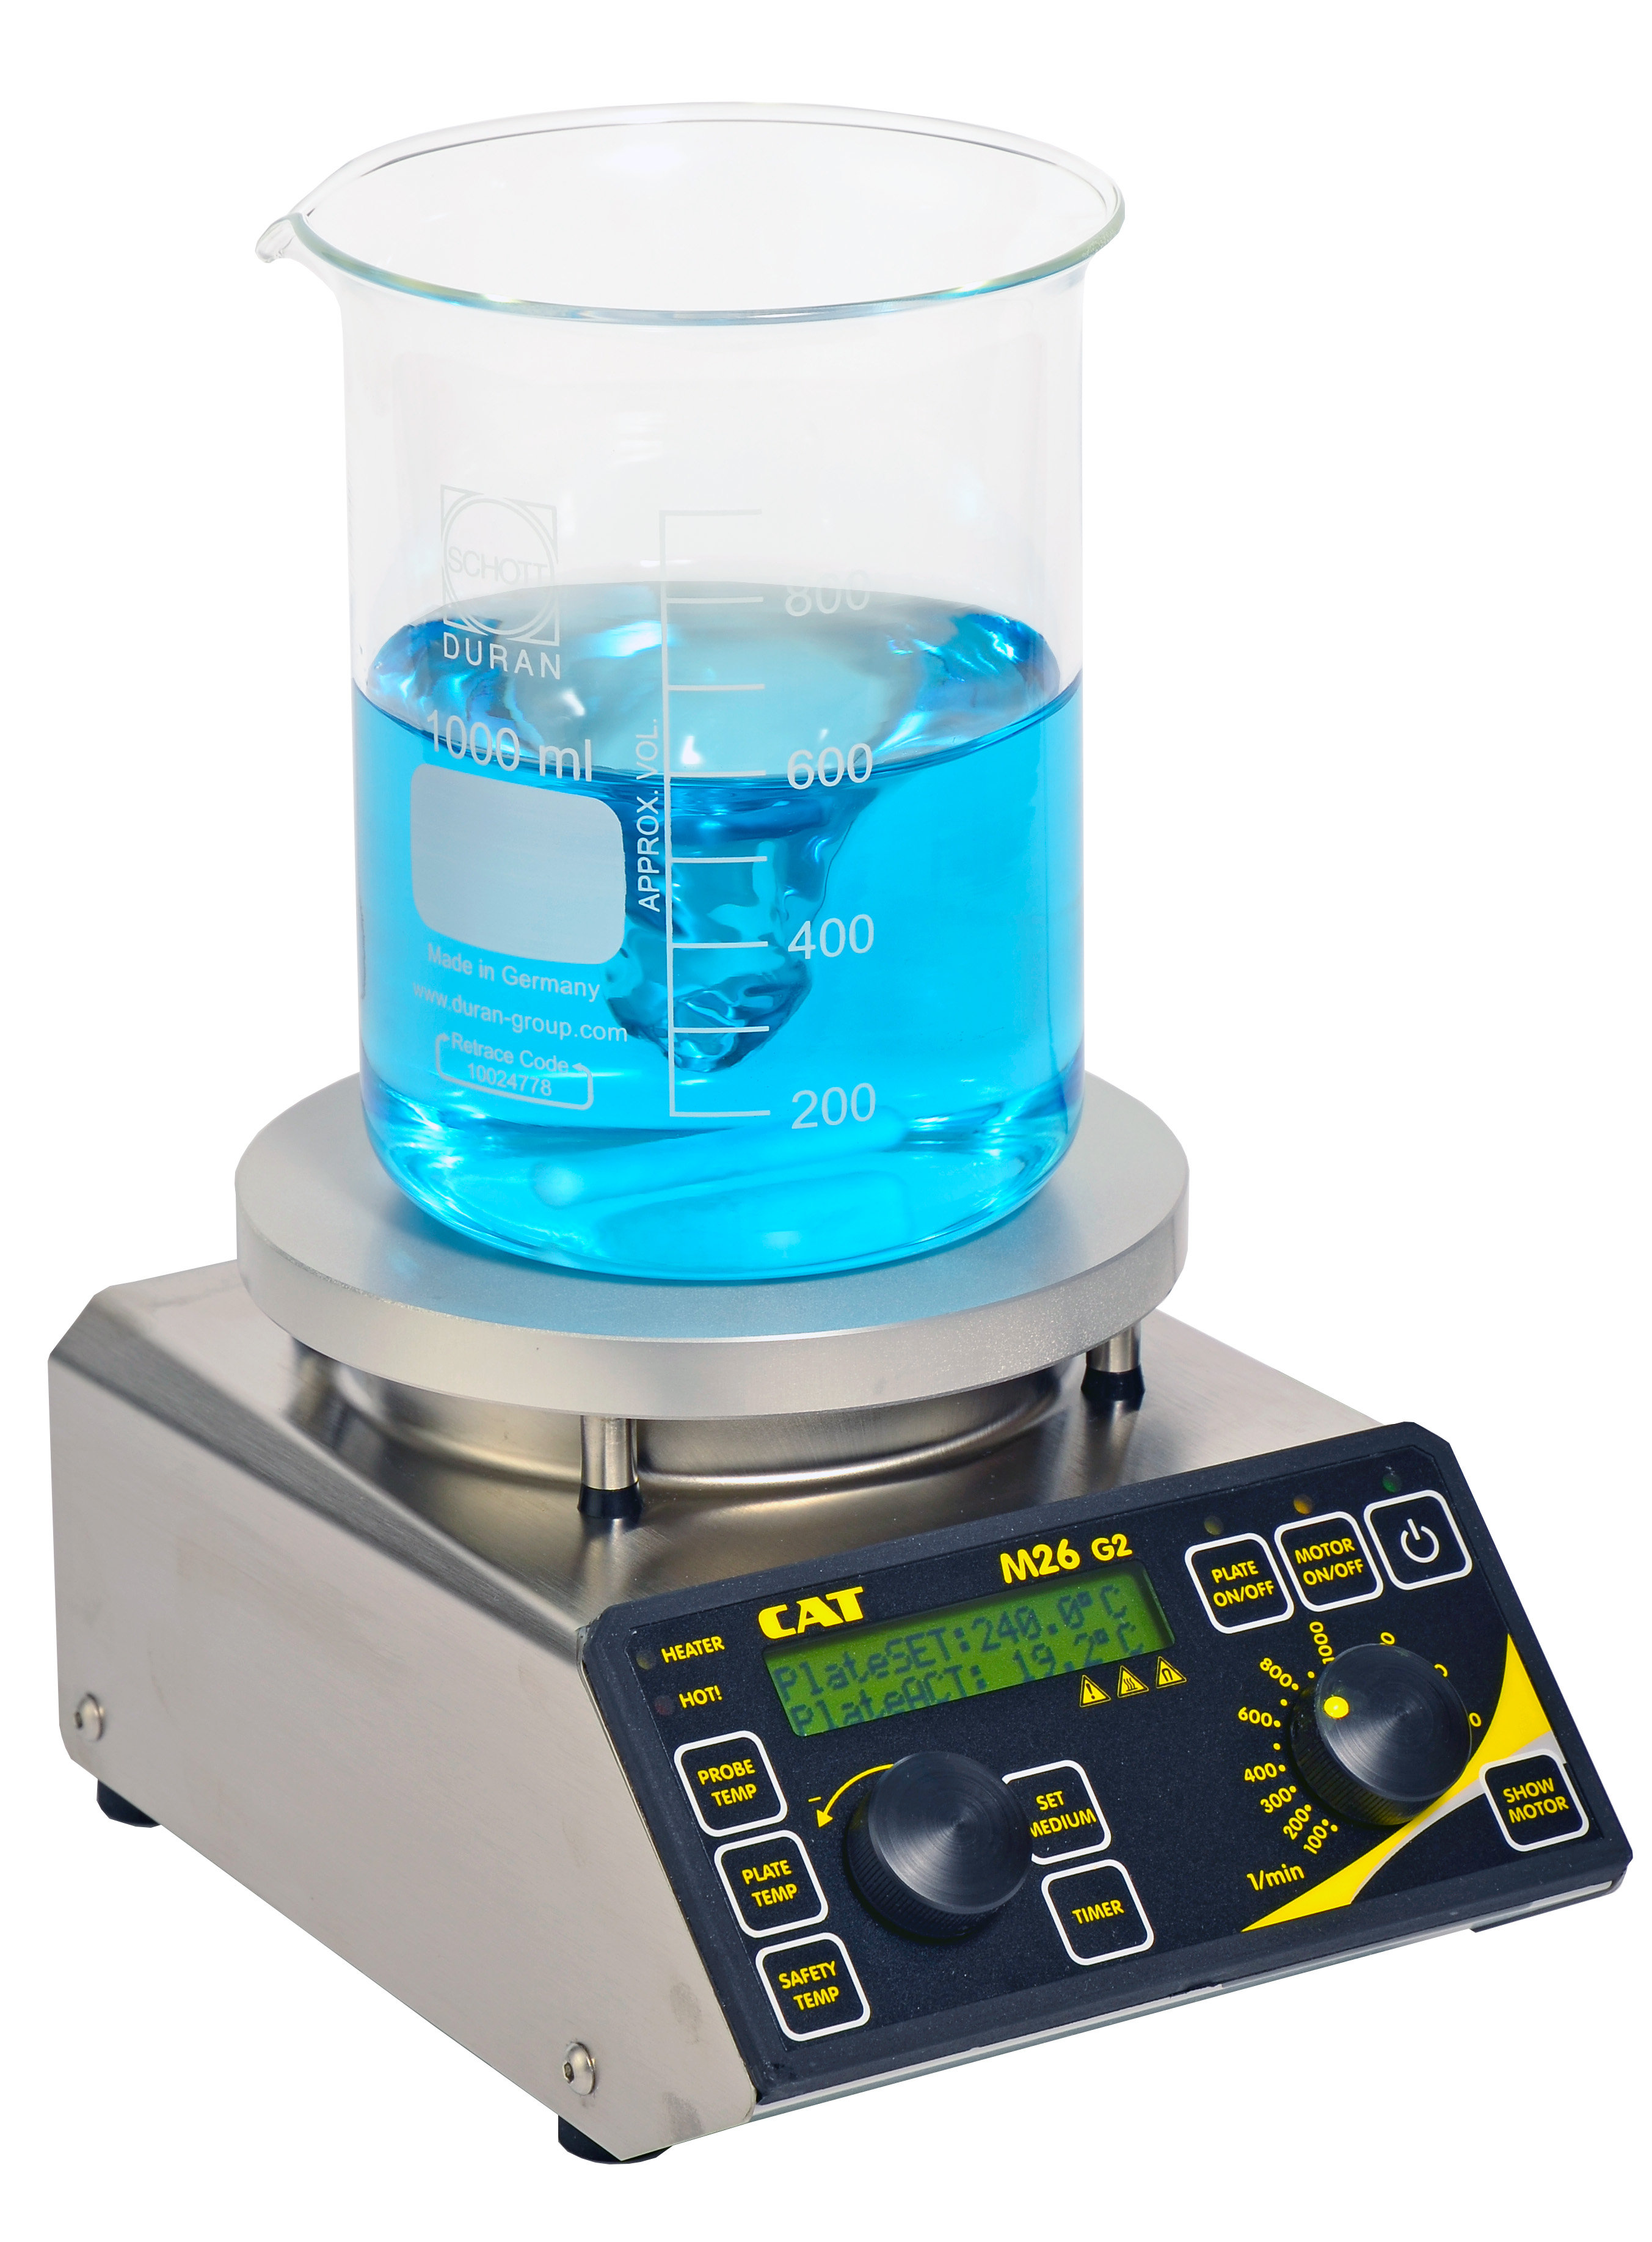 M26G2 Hotplate Safety Magnetic Stirrer